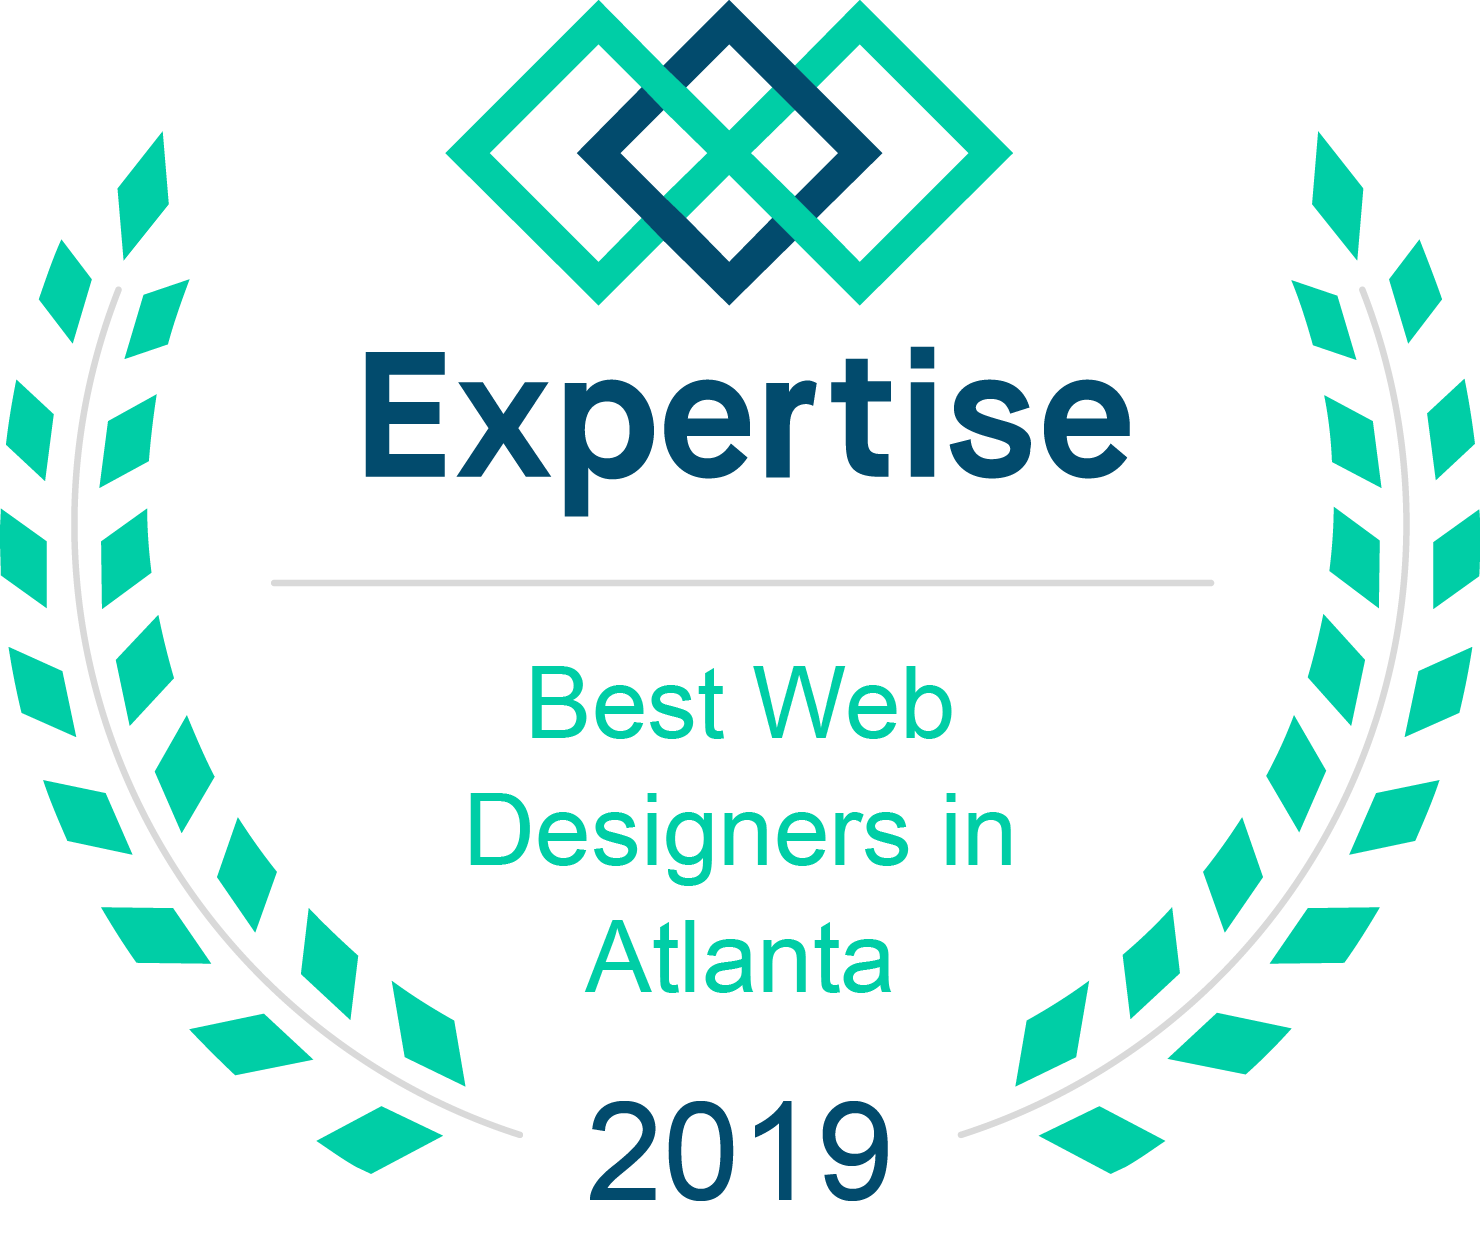 Expertise 2019 Best Web Designers in Atlanta Award